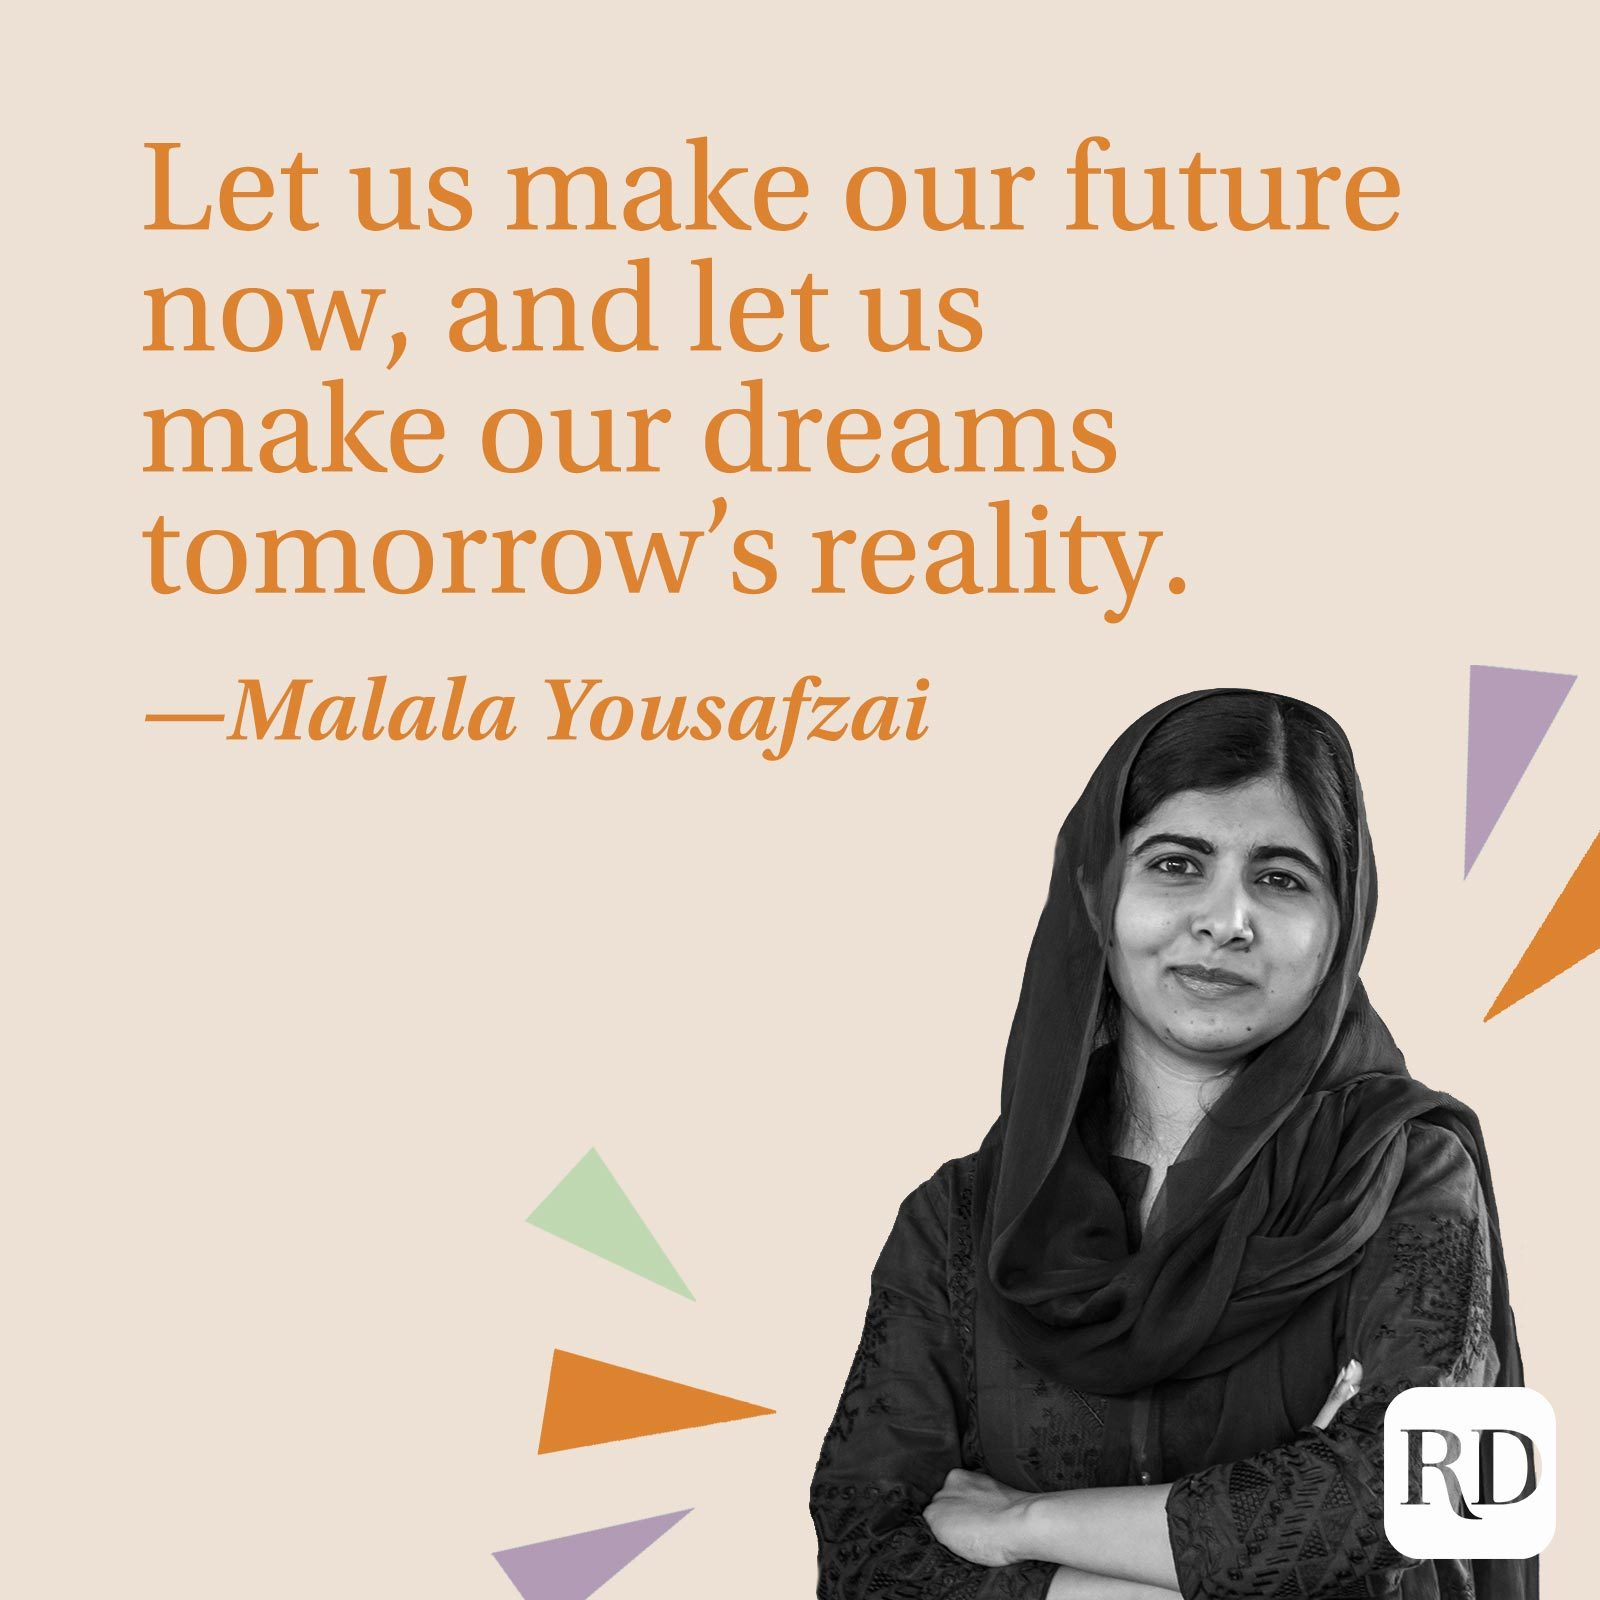 """""""Let us make our future now, and let us make our dreams tomorrow's reality."""" —Malala Yousafzai"""